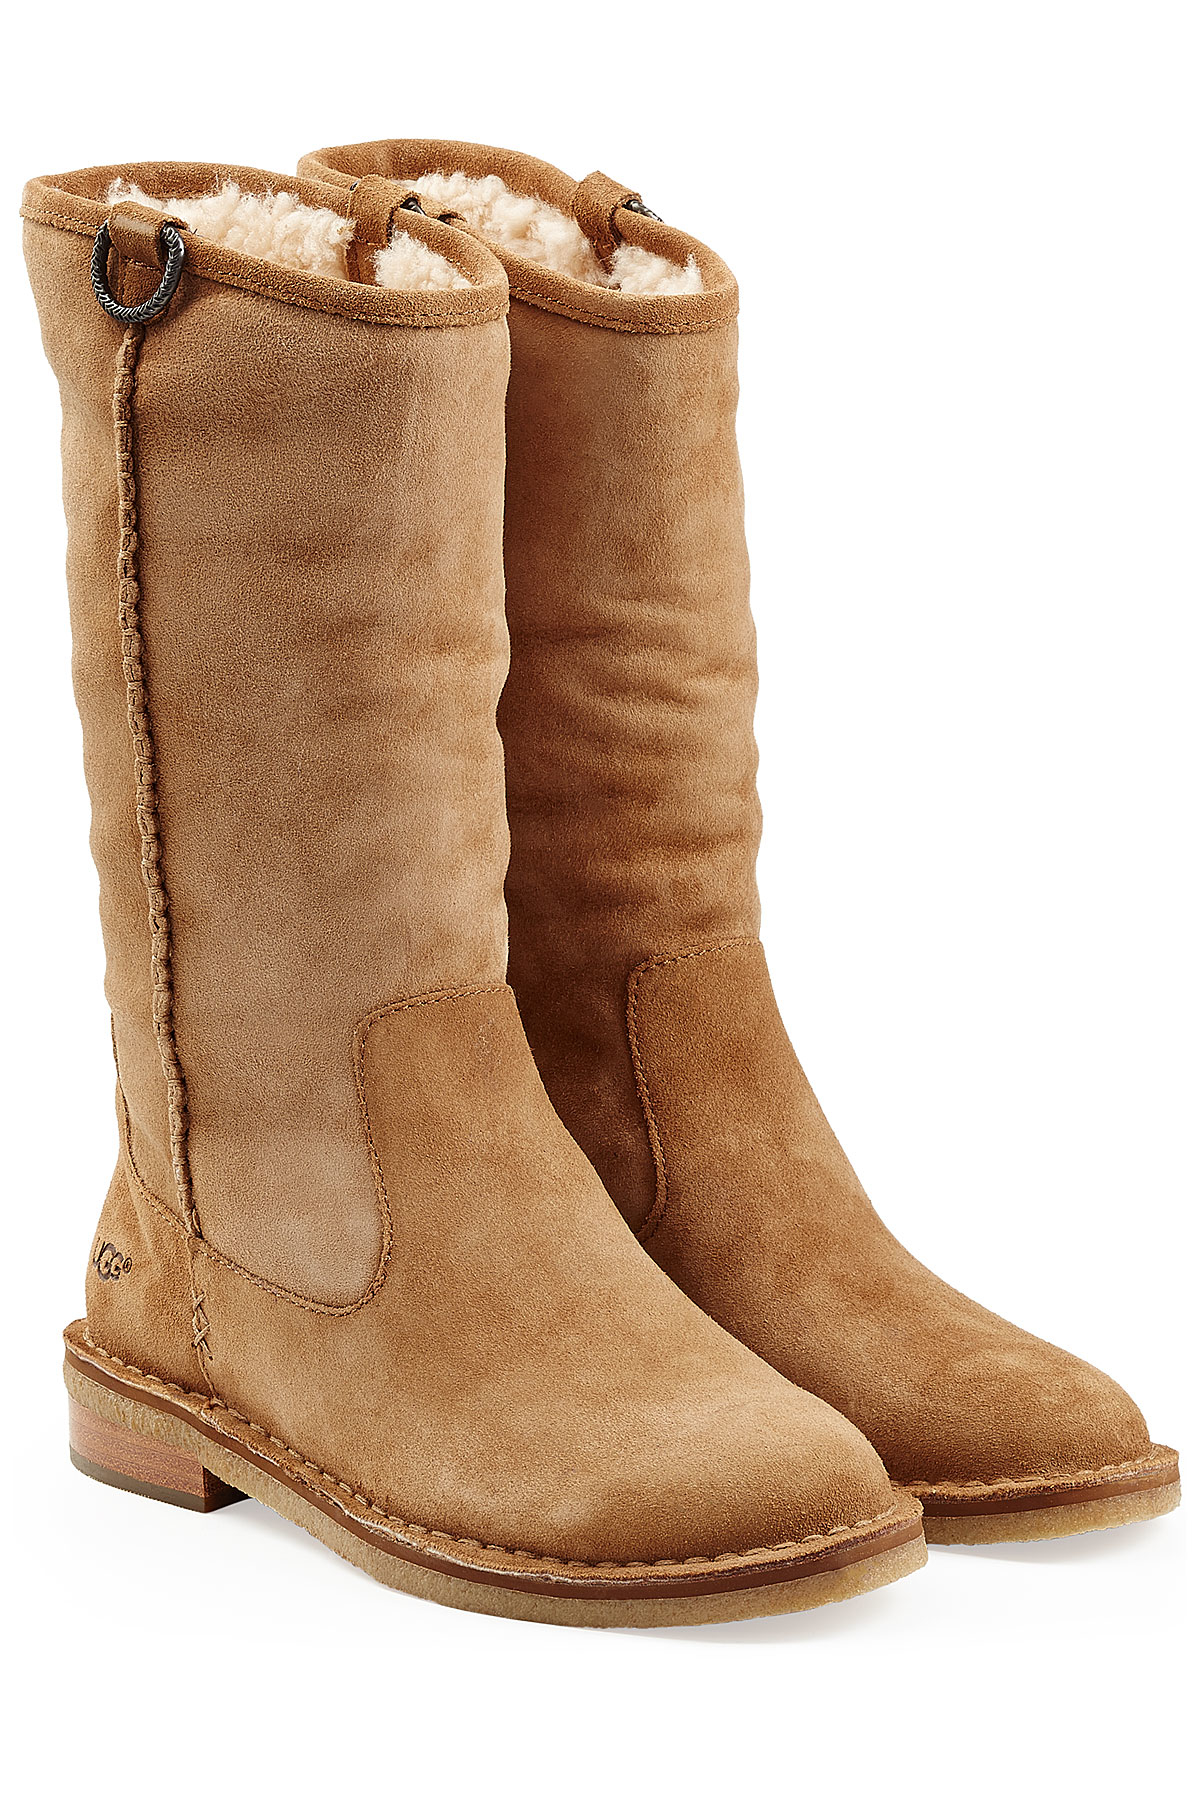 sheepskin boots gallery APMVIXY